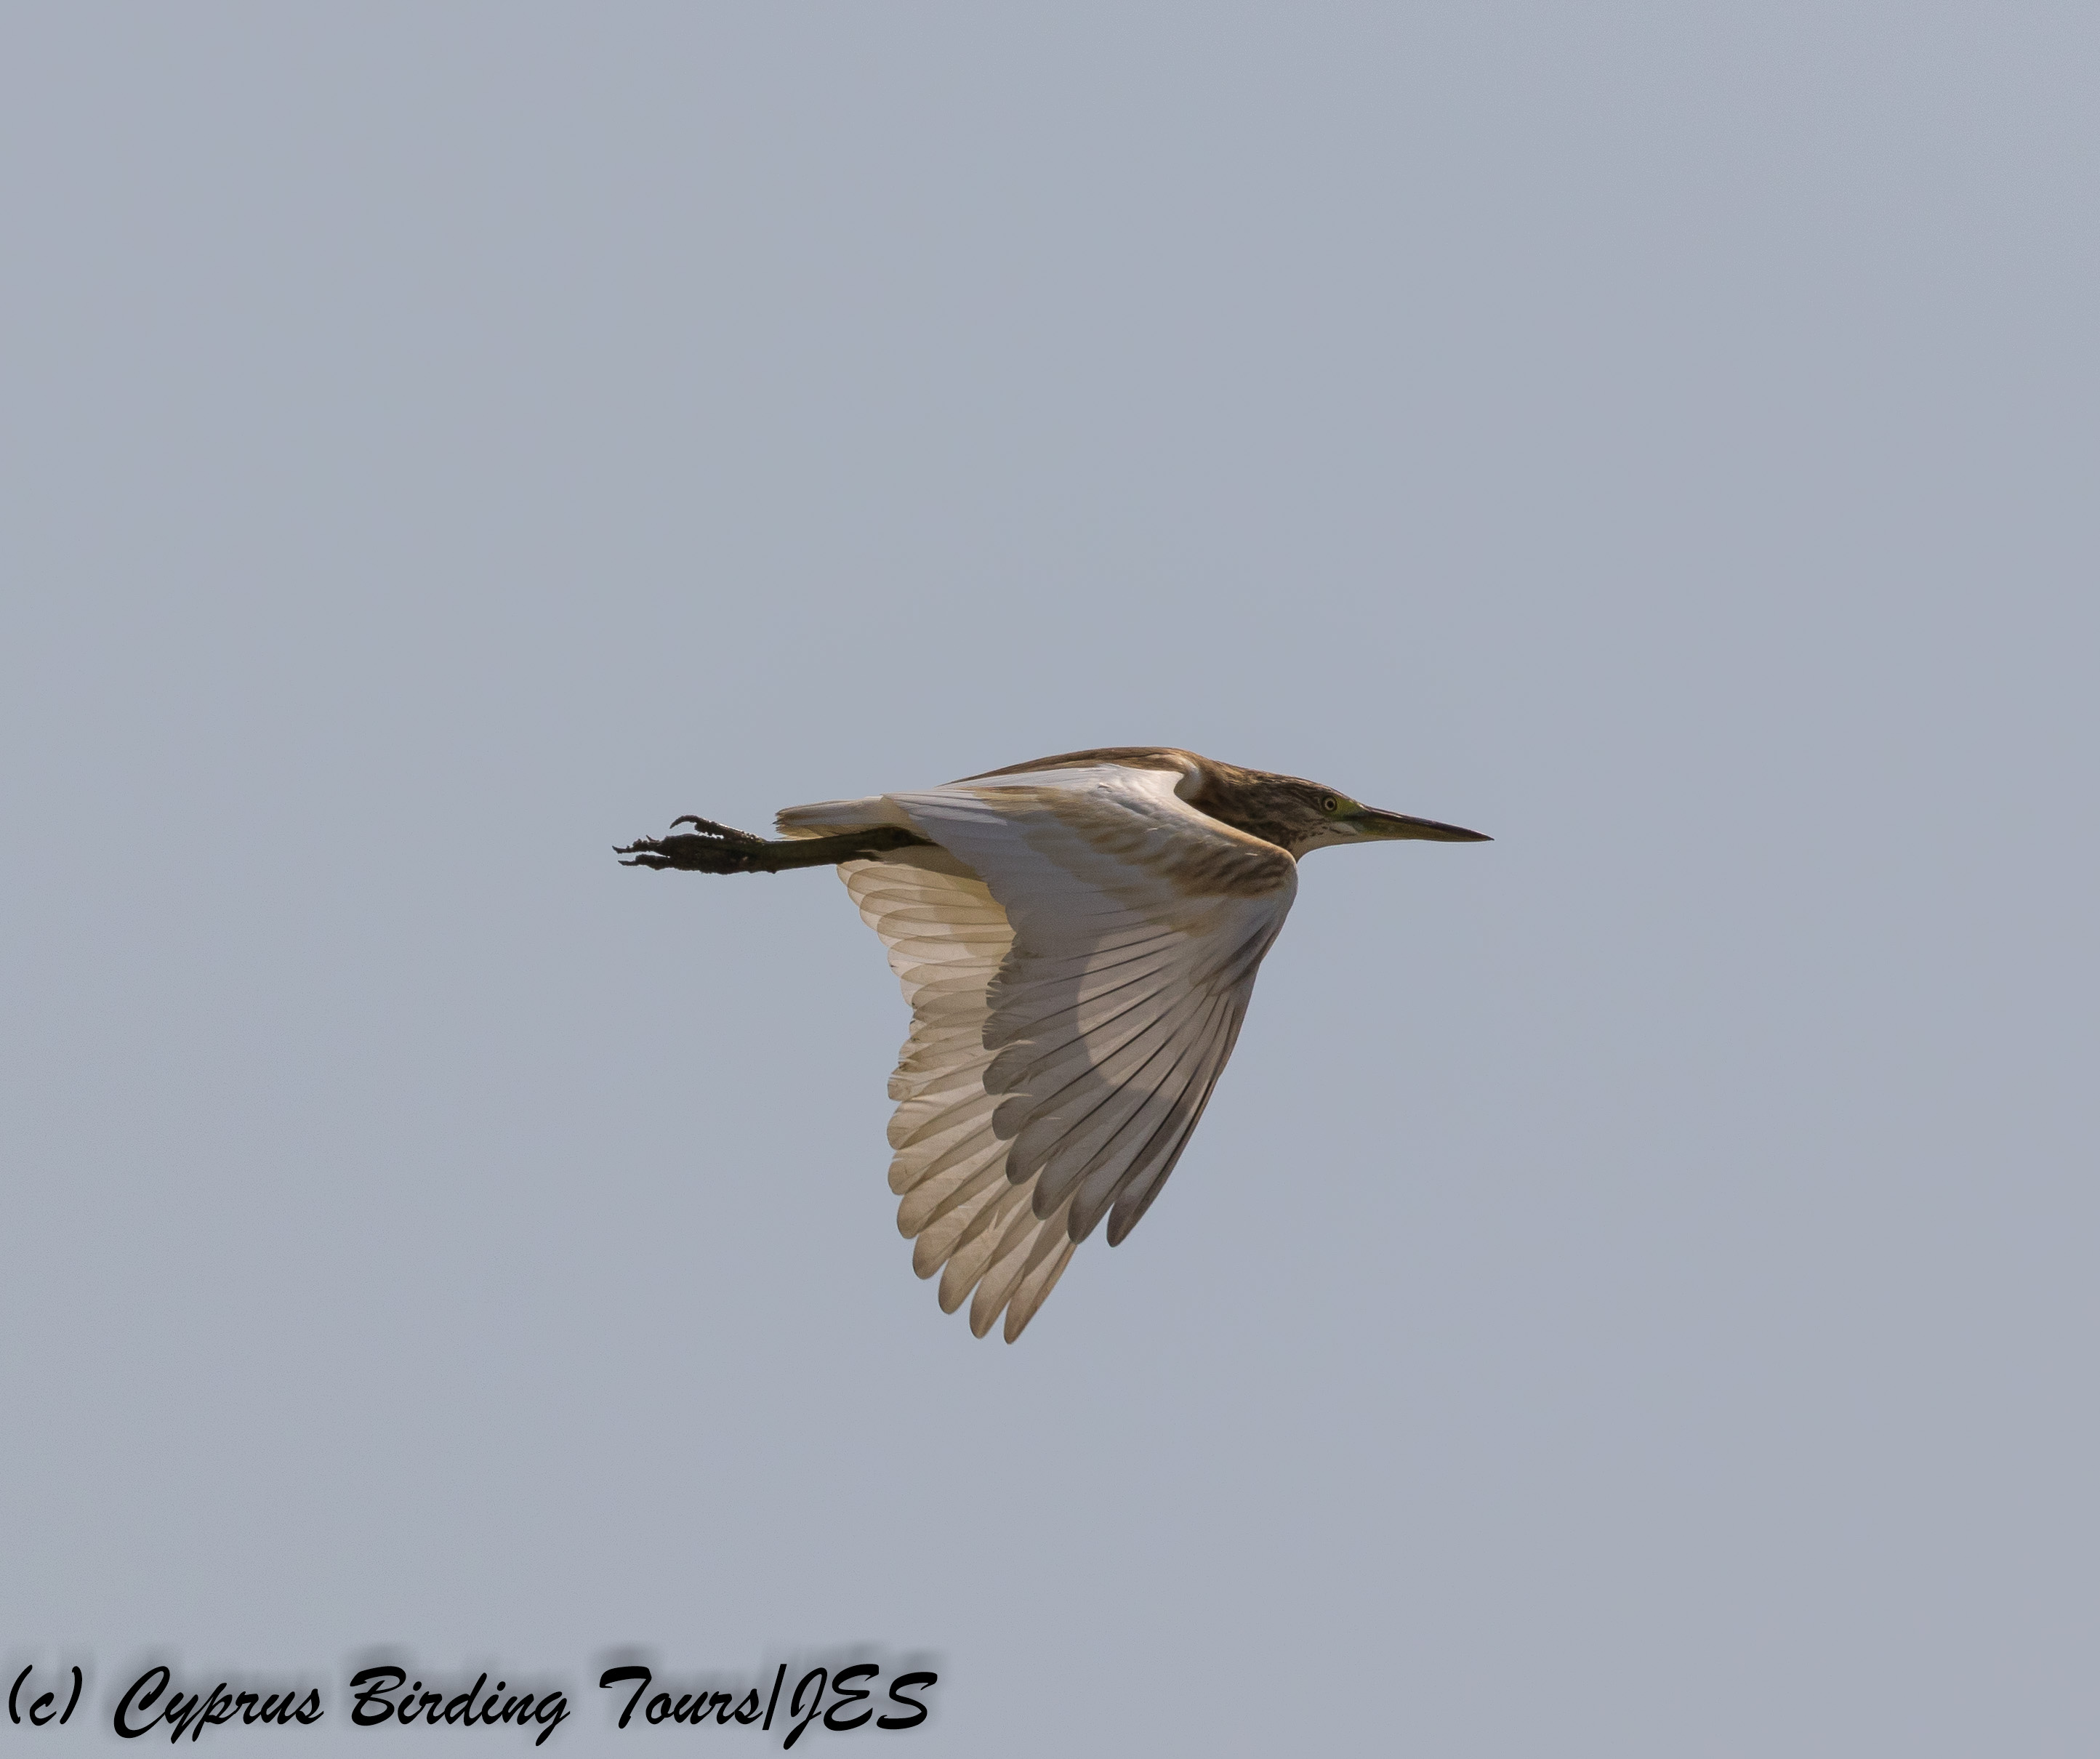 Squacco Heron, Larnaca 15th September 2017 (c) Cyprus Birding Tours